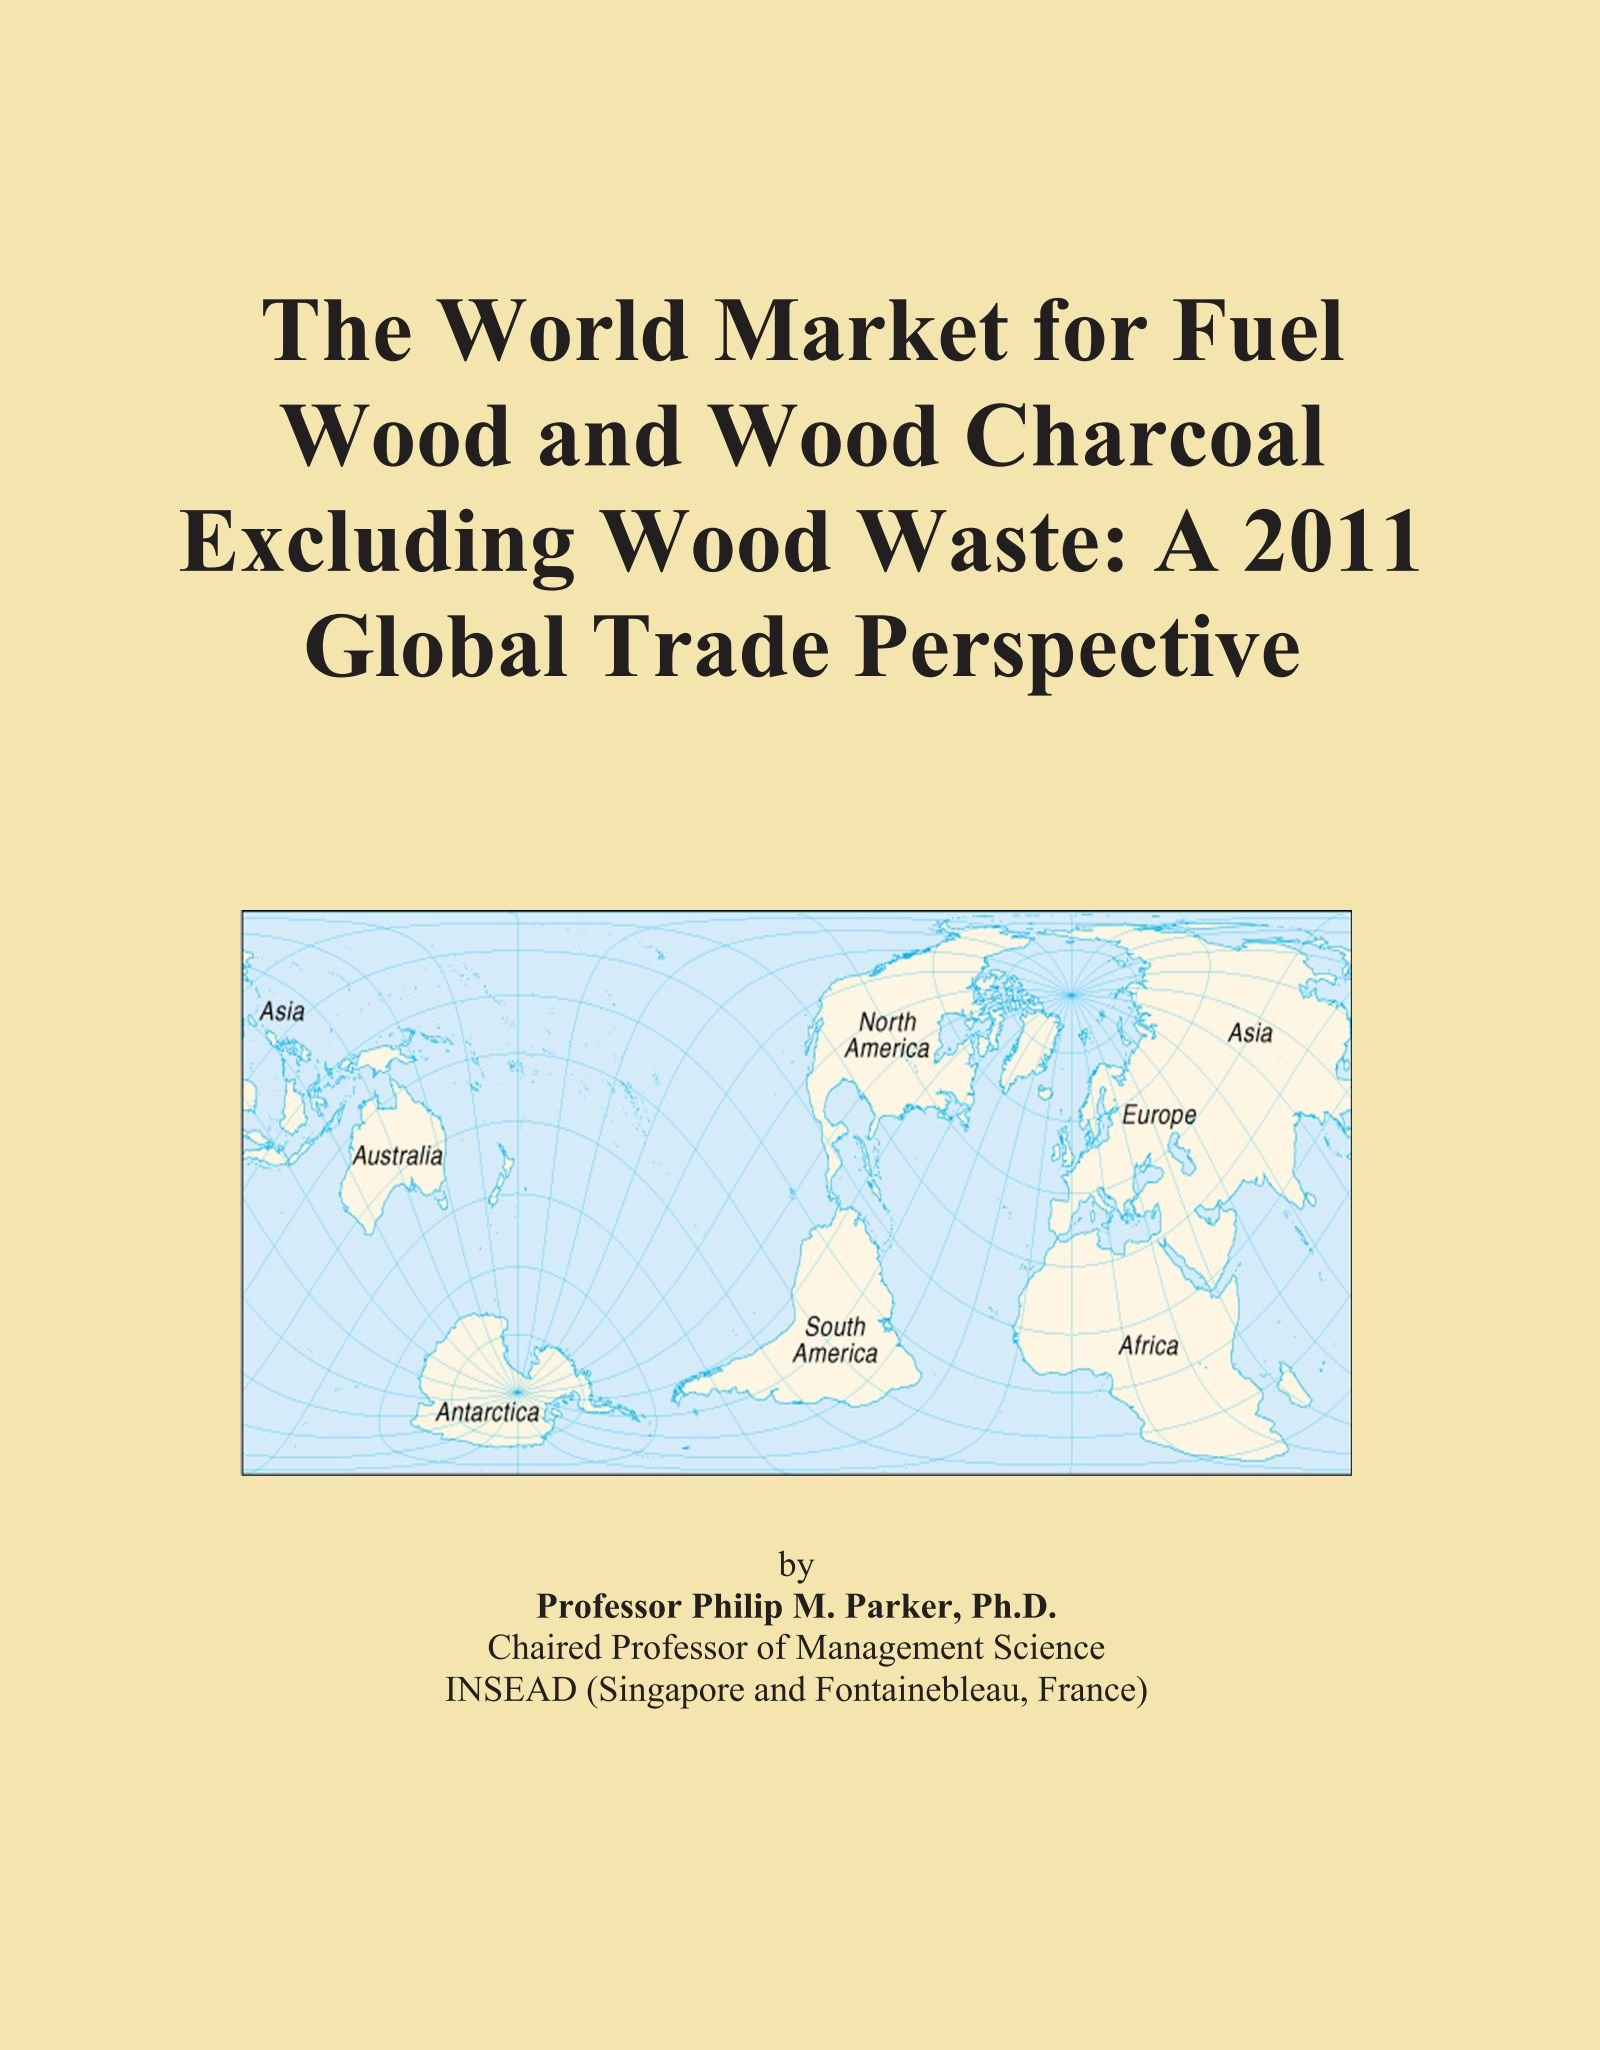 The World Market for Fuel Wood and Wood Charcoal Excluding